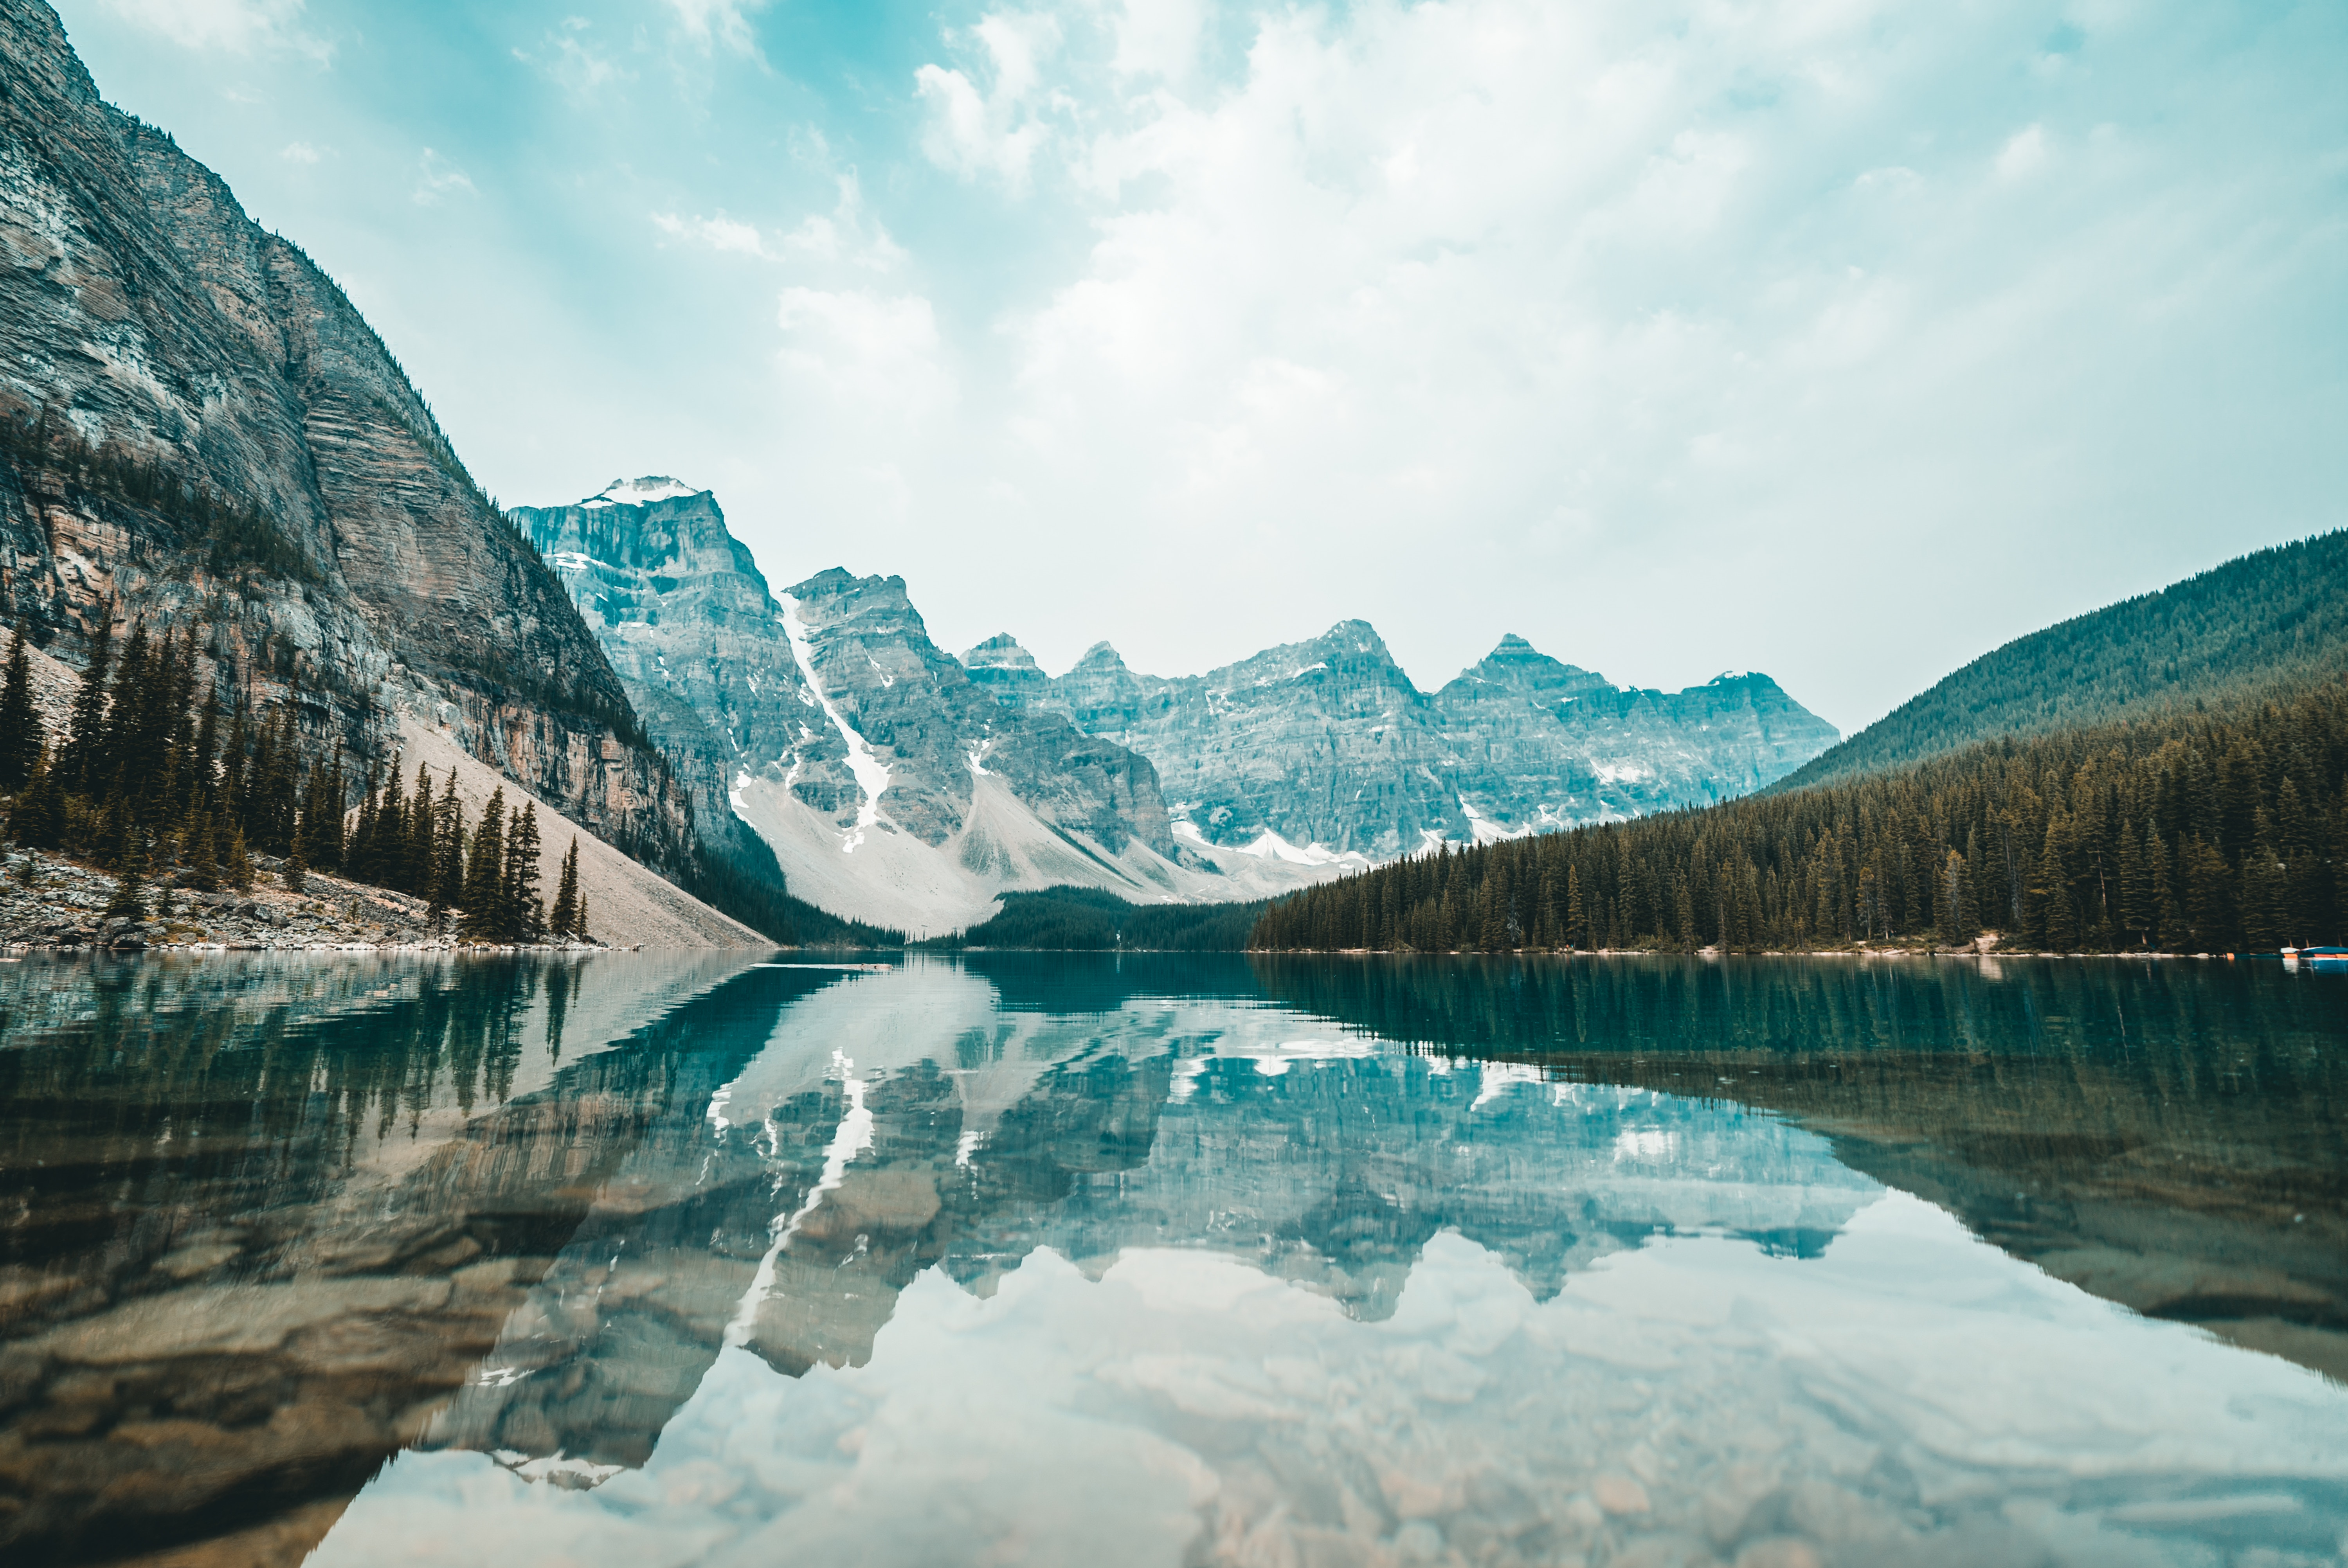 Reflective mountain view lake, Moraine Lake, Canada